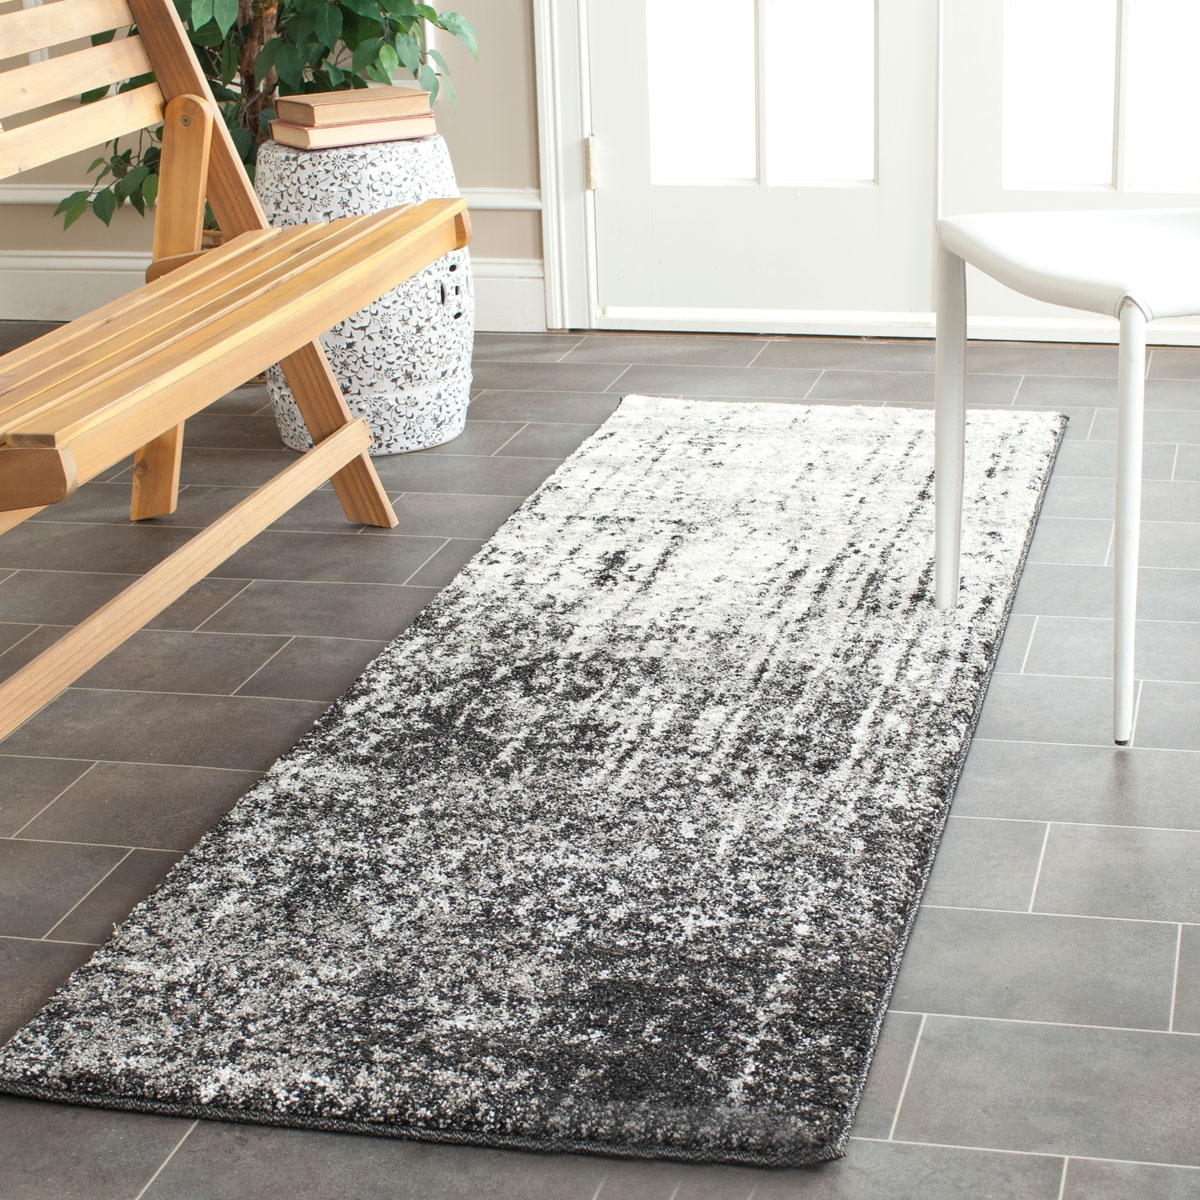 Retro Rugs Grey Black 60s Styled Area Rug Safavieh Inside Rug Runners Grey (#14 of 20)